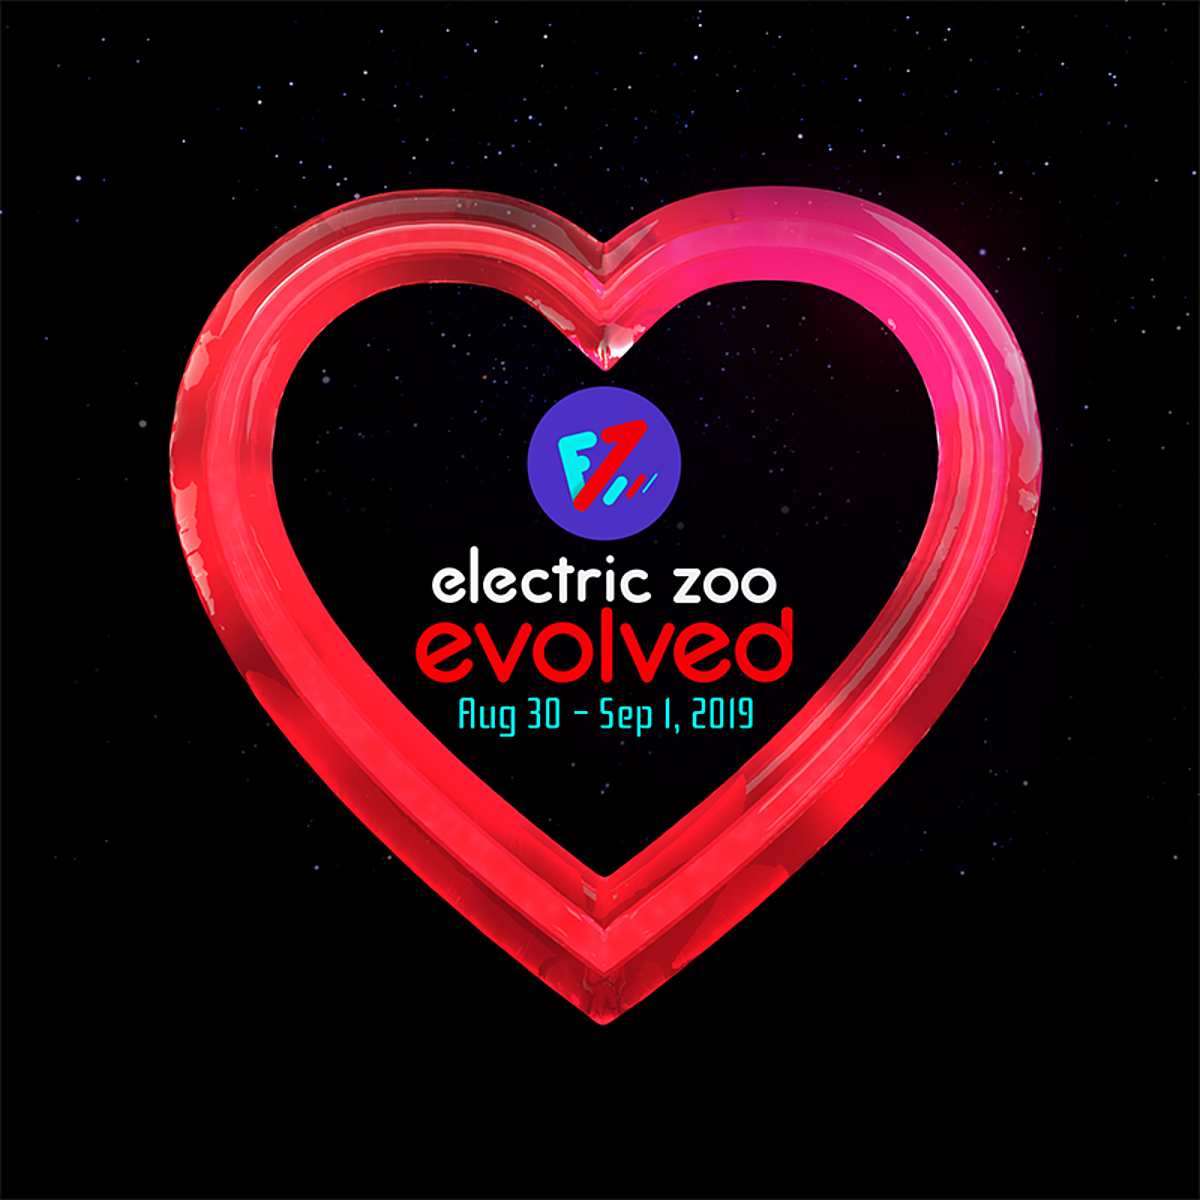 Electric Zoo 2019 stage-by-stage daily lineups